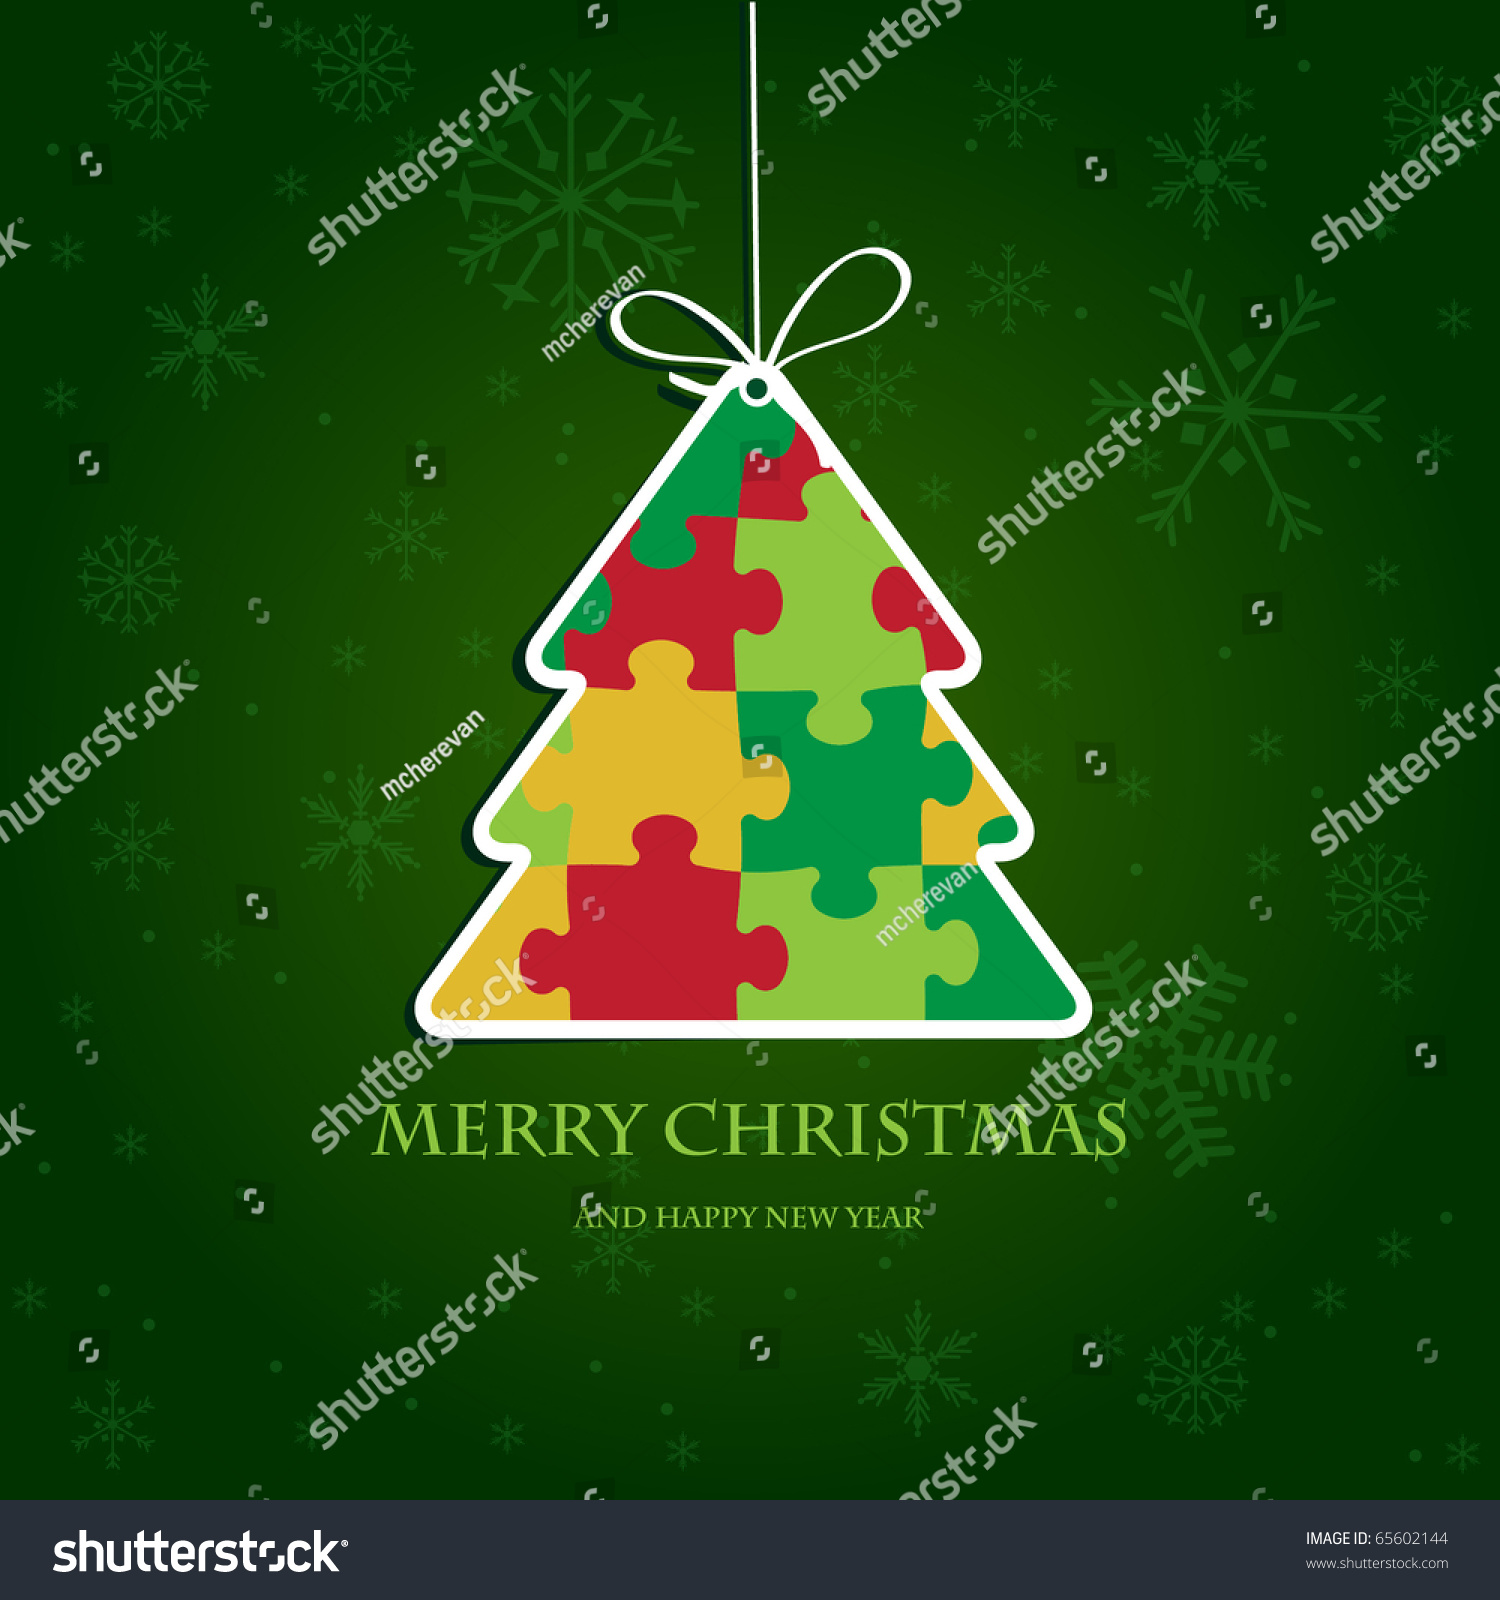 Christmas Tree From Jigsaw Puzzle. Christmas Card With Bright Colors. Paper Christmas  Tree.